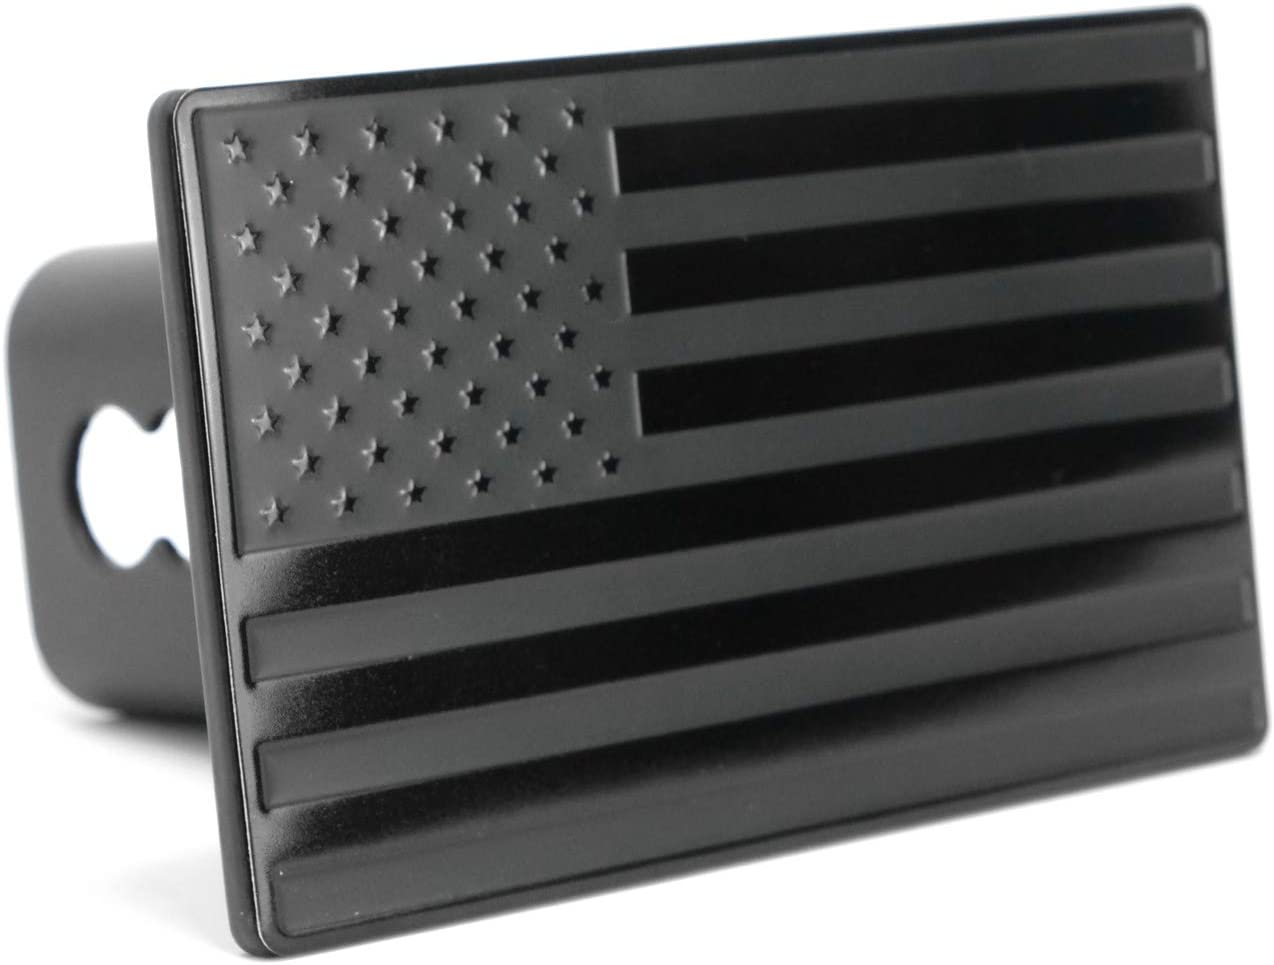 USA US American Stainless Steel Flag Metal Emblem on Metal Trailer Hitch Cover eVerHITCH Fits 2 Receivers, Black